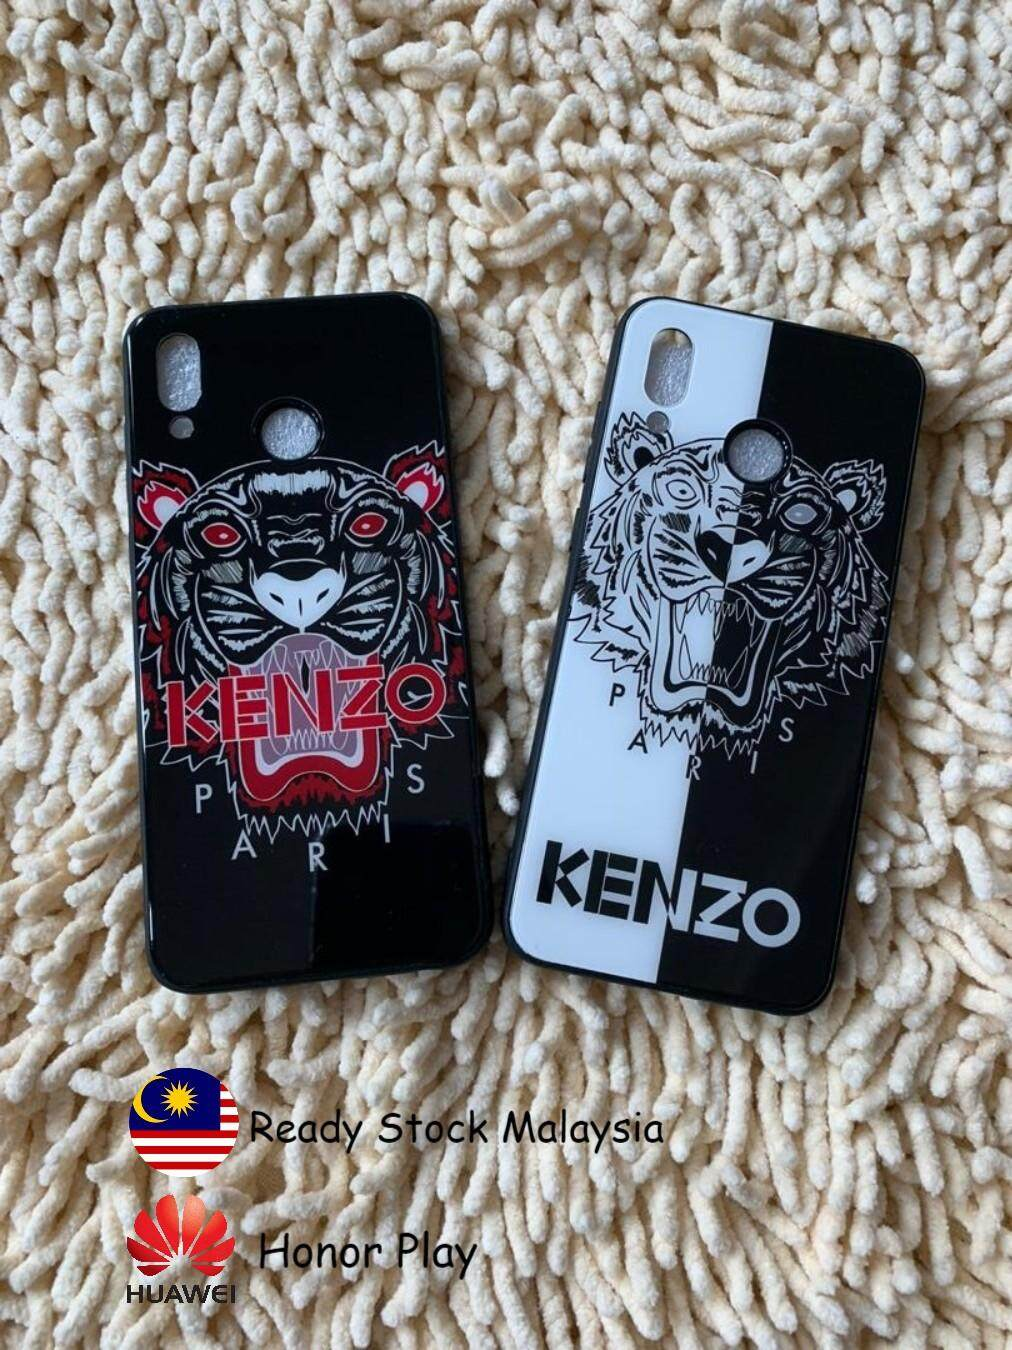 Honor play Kenzo Tiger Protective casing, Tempered Glass texture Silicone Case protection